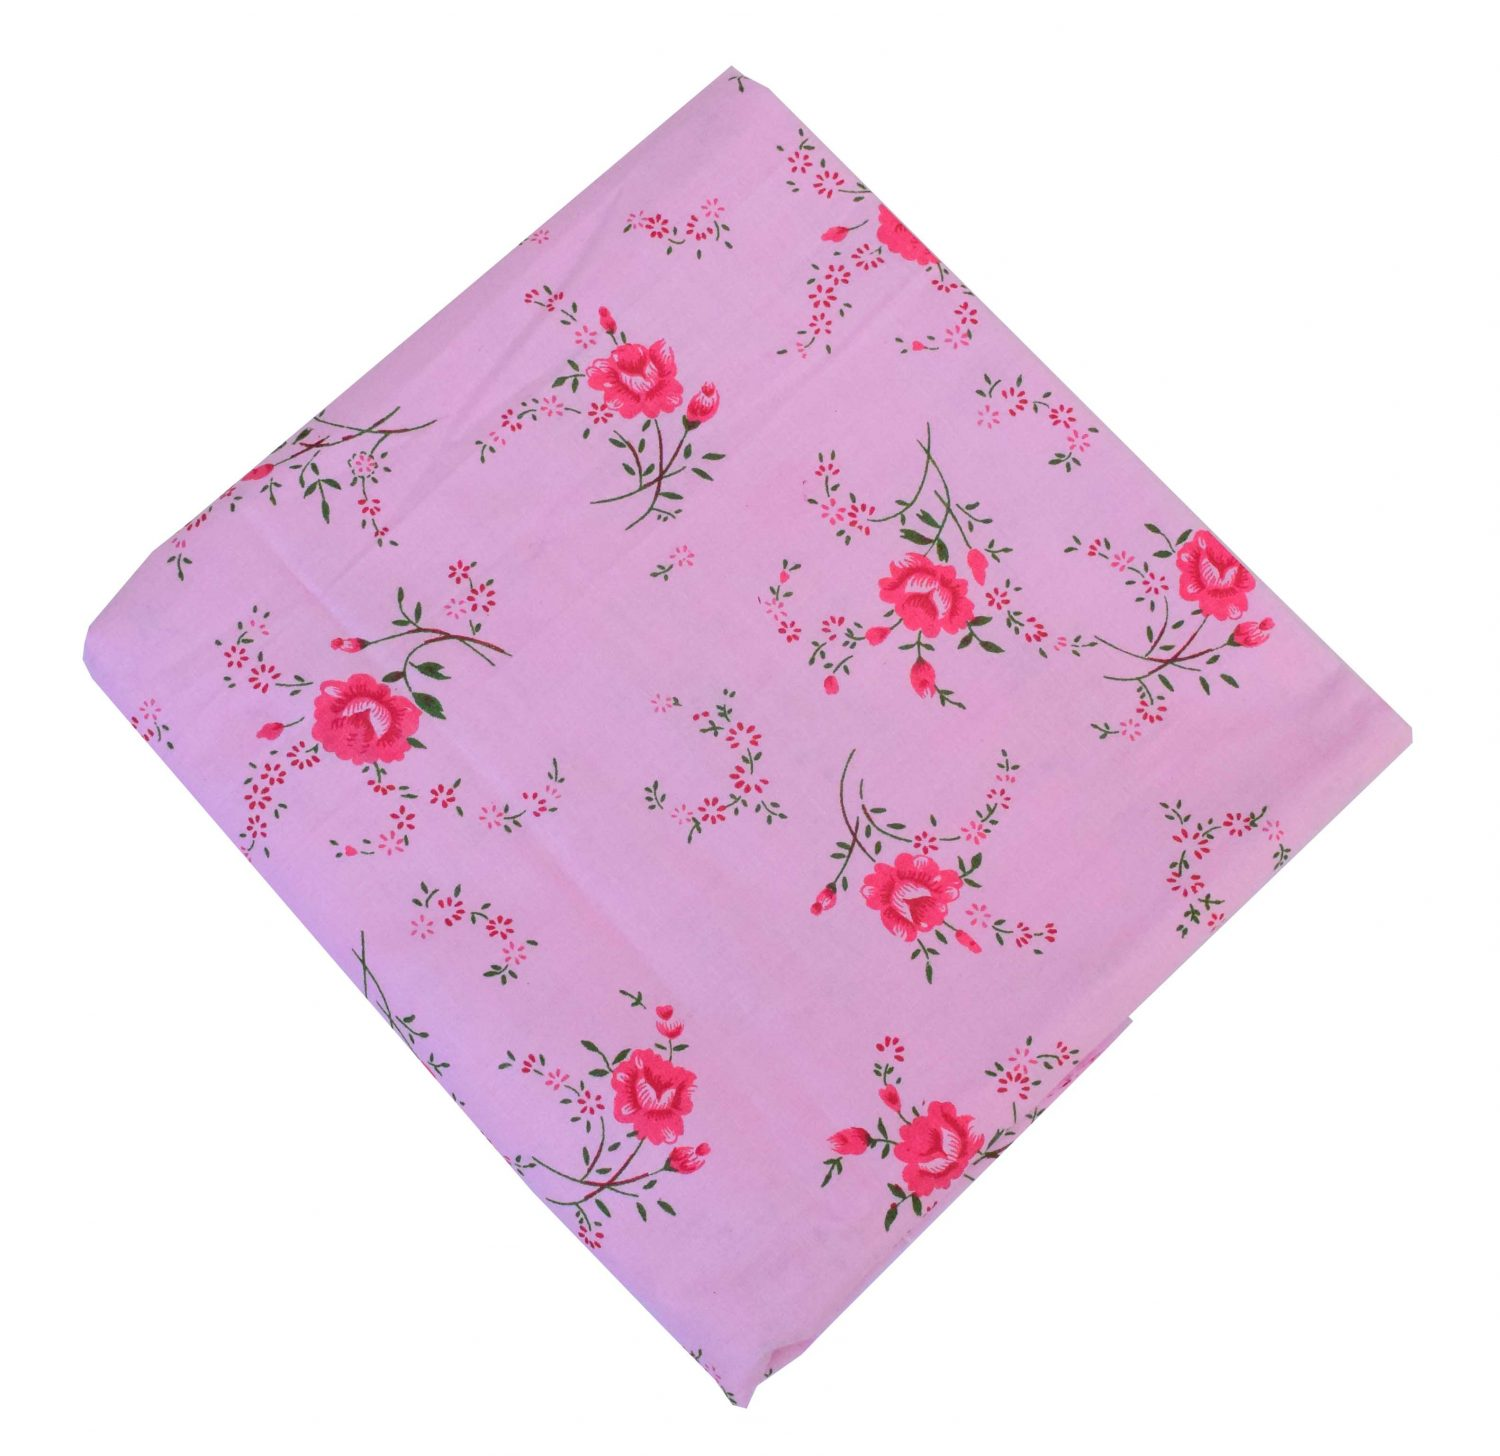 Pink Printed 100% Pure Cotton Fabric PC575 1